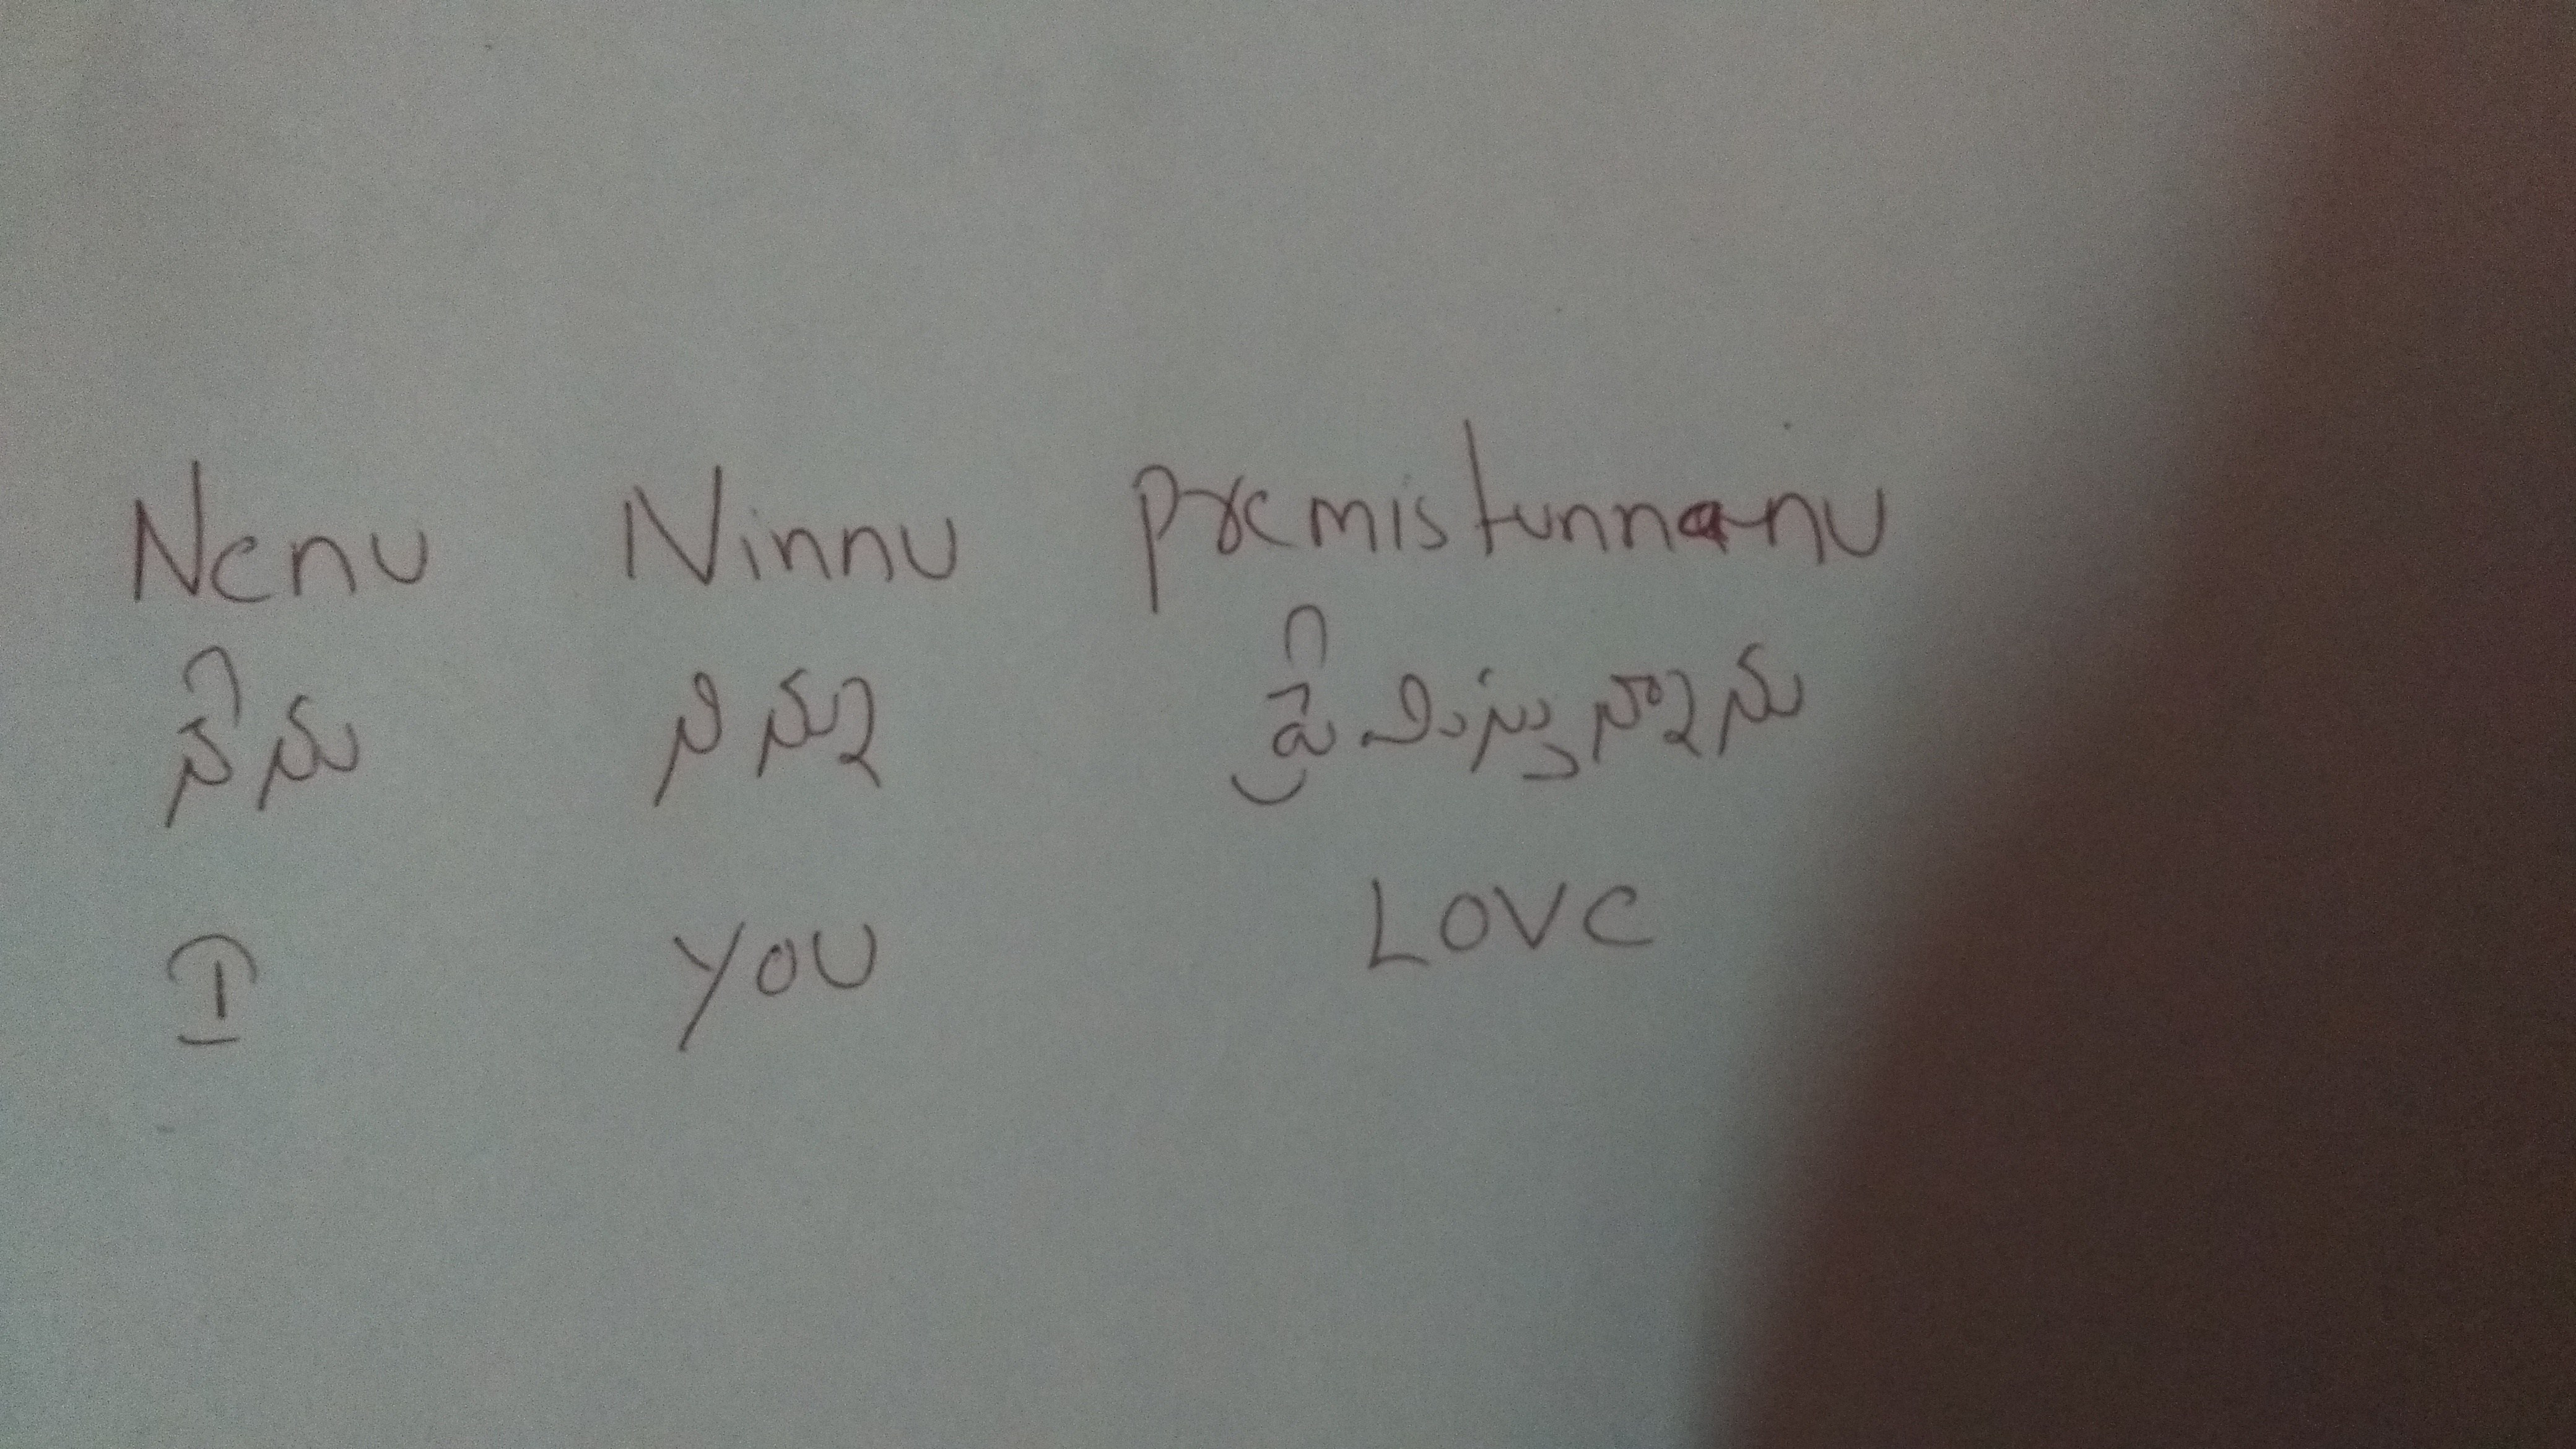 What is the difference between nenu and ninnu in the Telugu